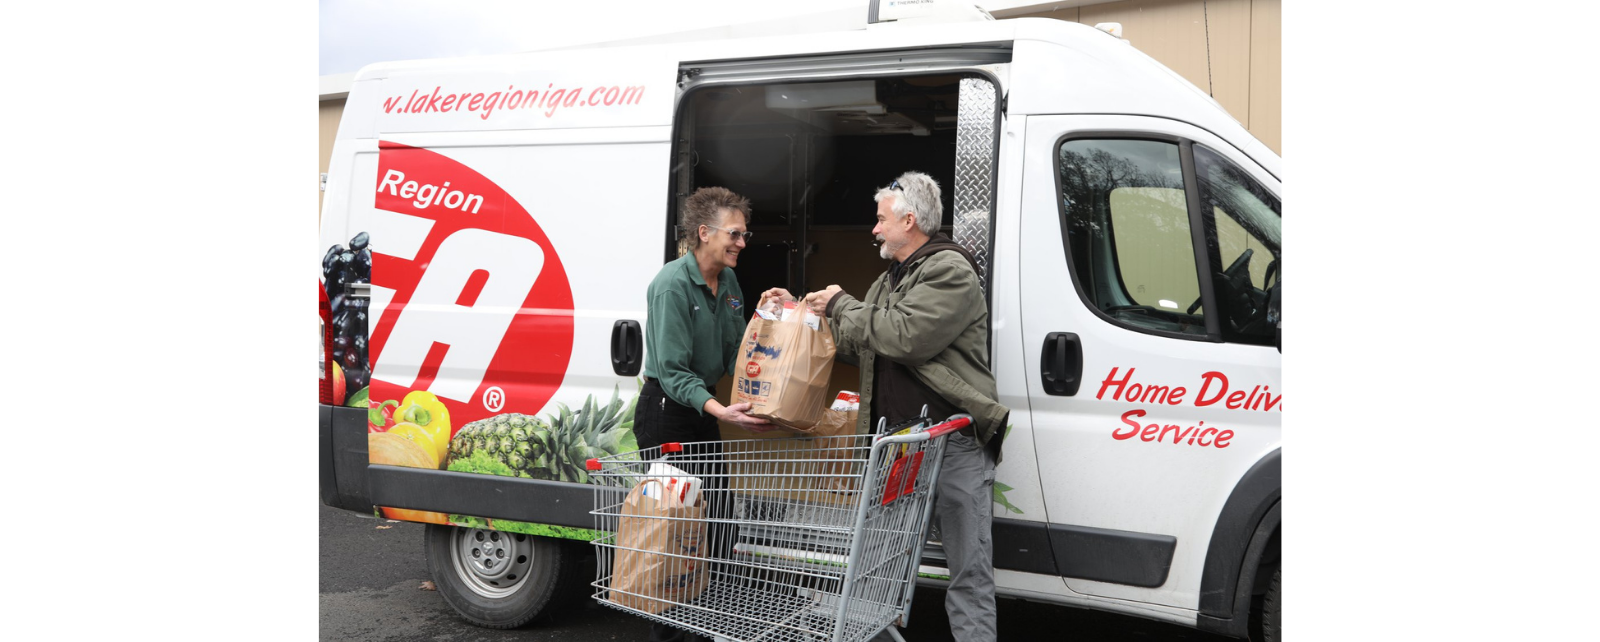 A man and a woman loading groceries into a Lake Region IGA delivery van